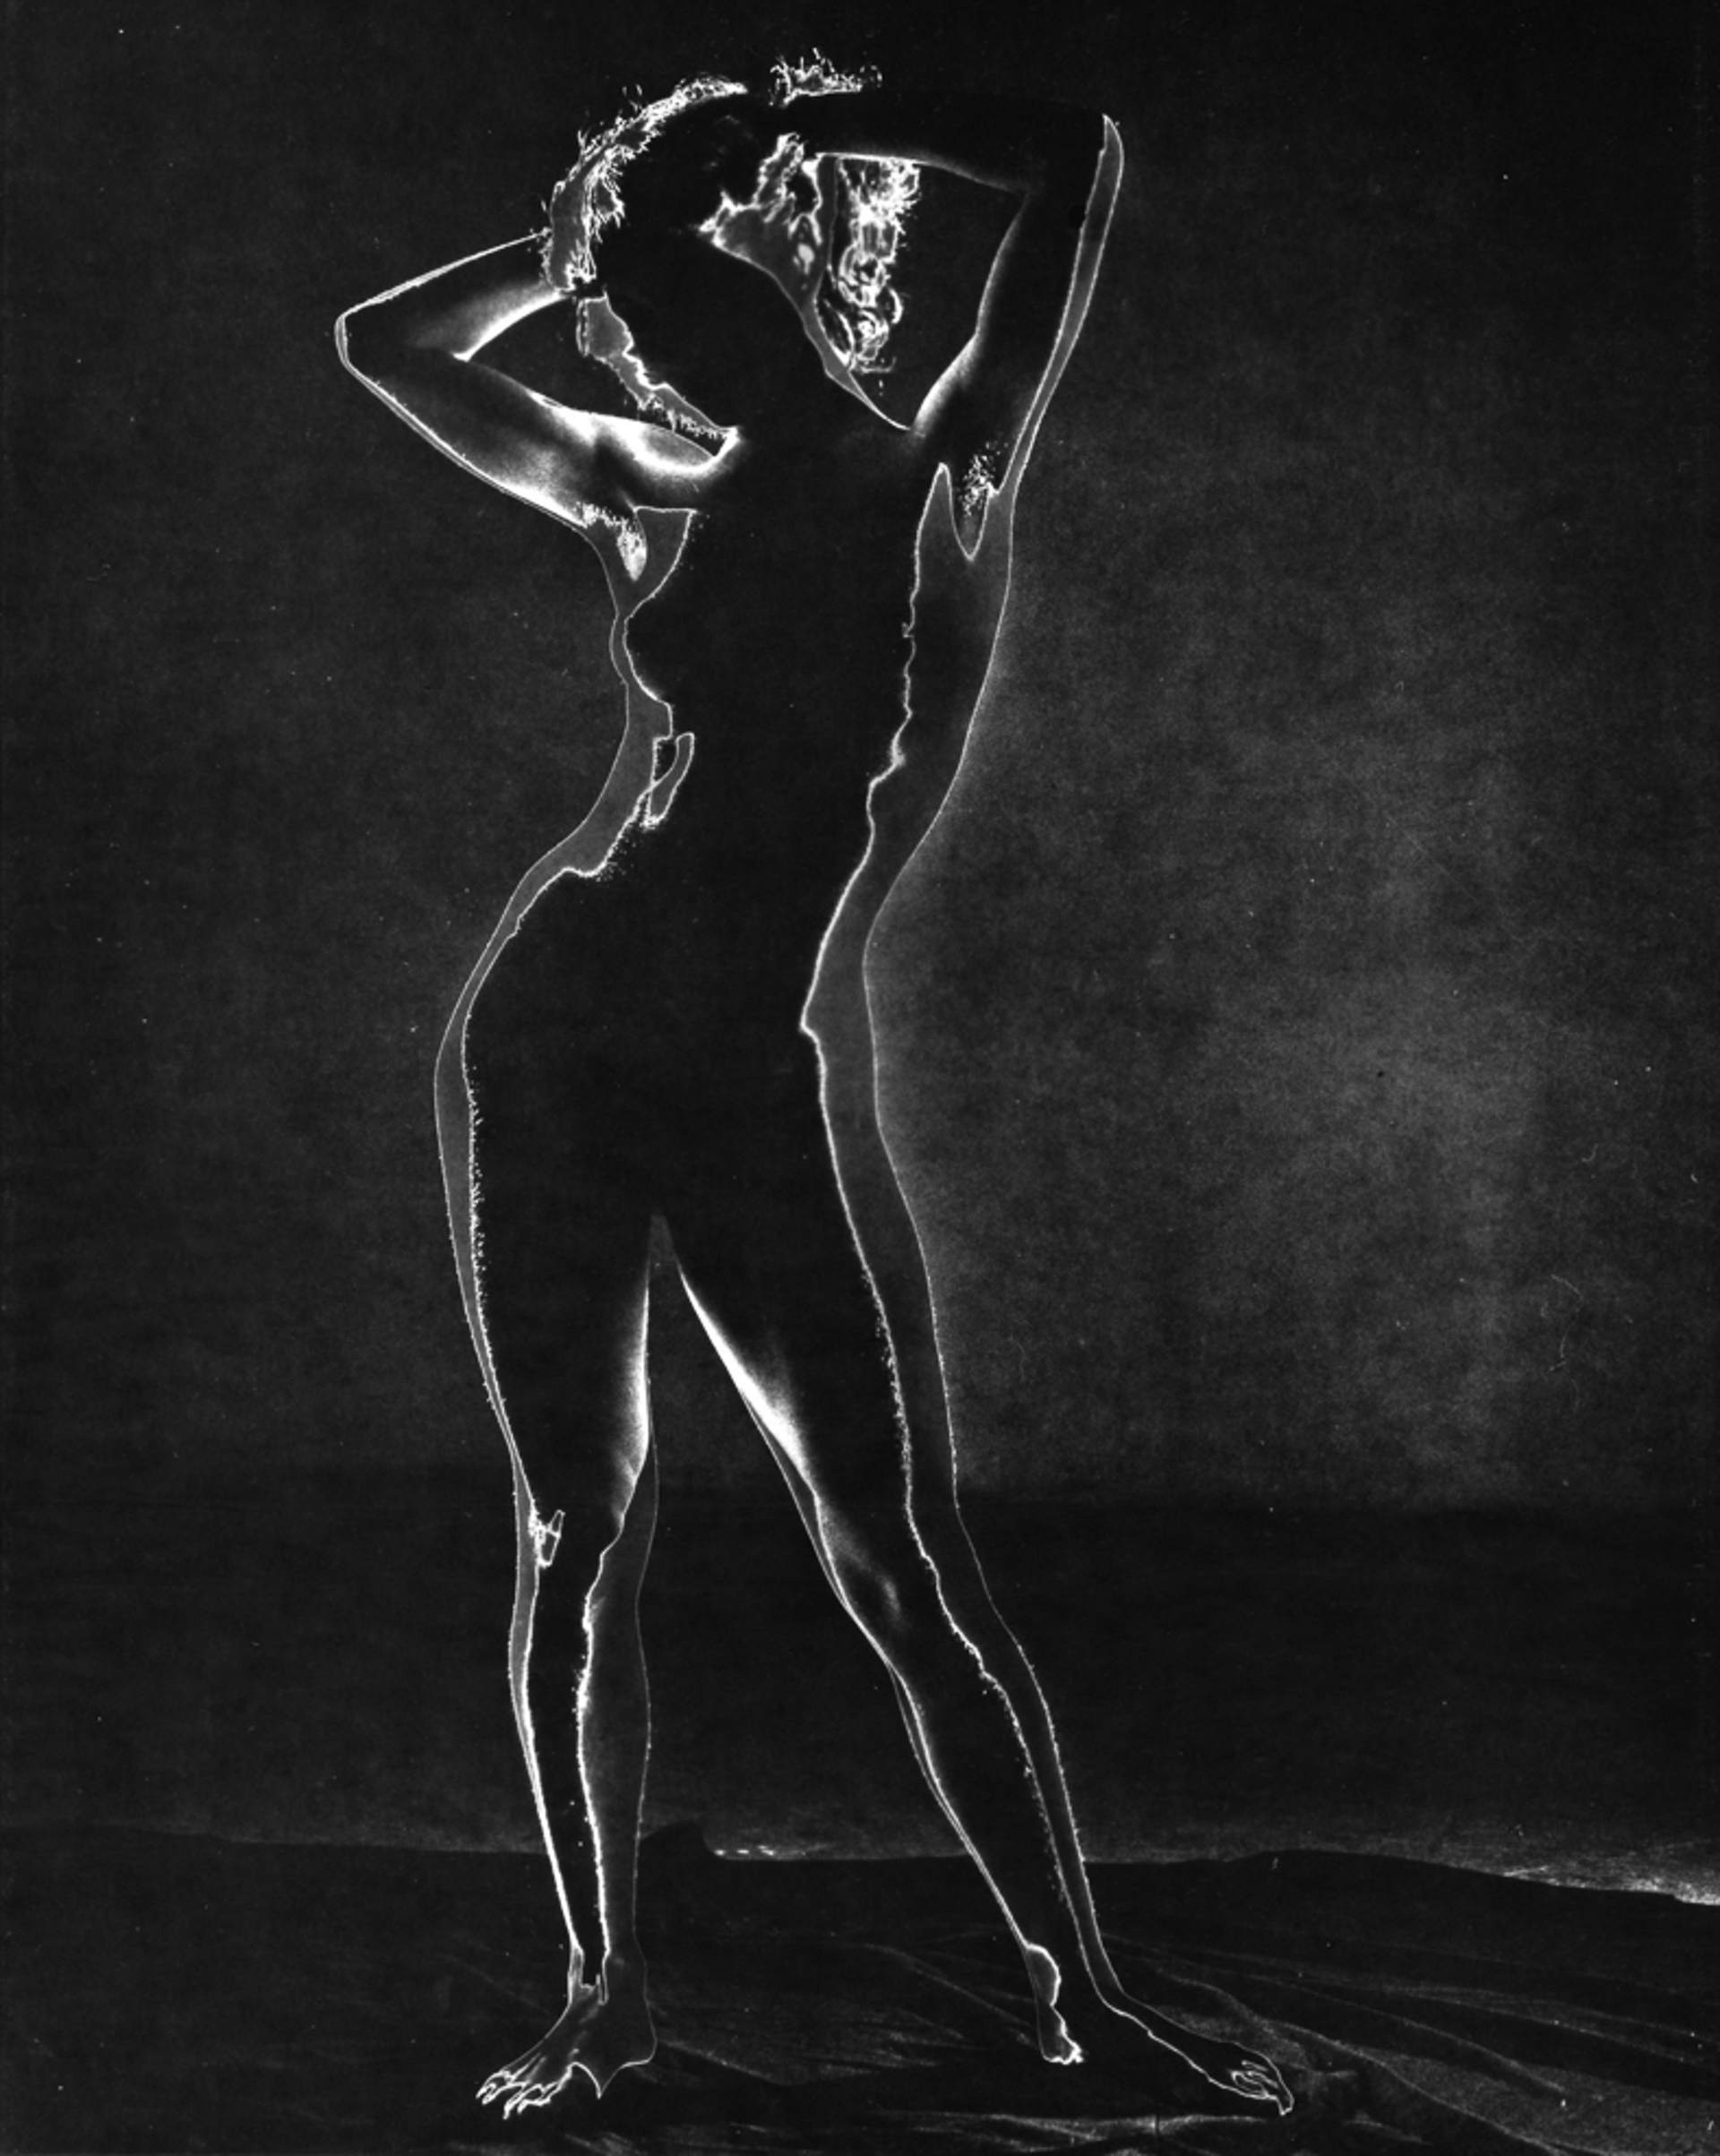 Untitled (Solarized Nude) by Andreas Feininger